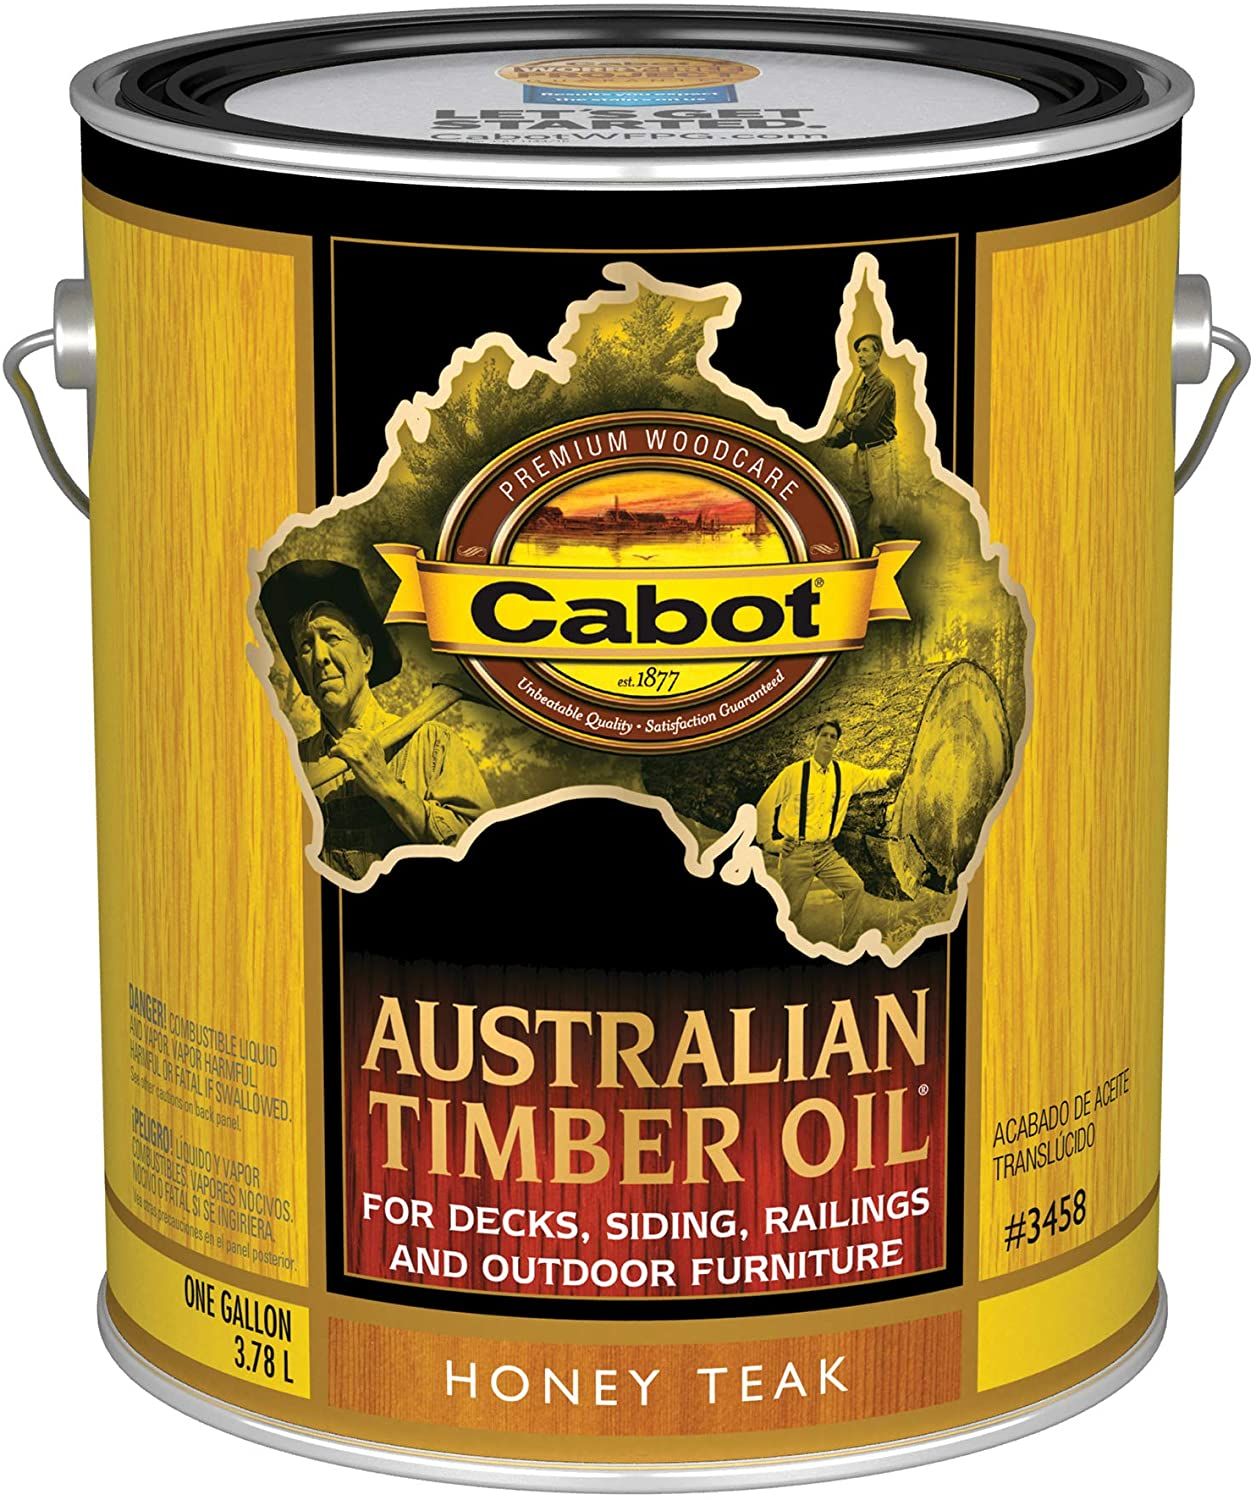 Cabot 140.0003458.007 Popular standard Australian Challenge the lowest price of Japan Timber Stain Honey Oil Gallon